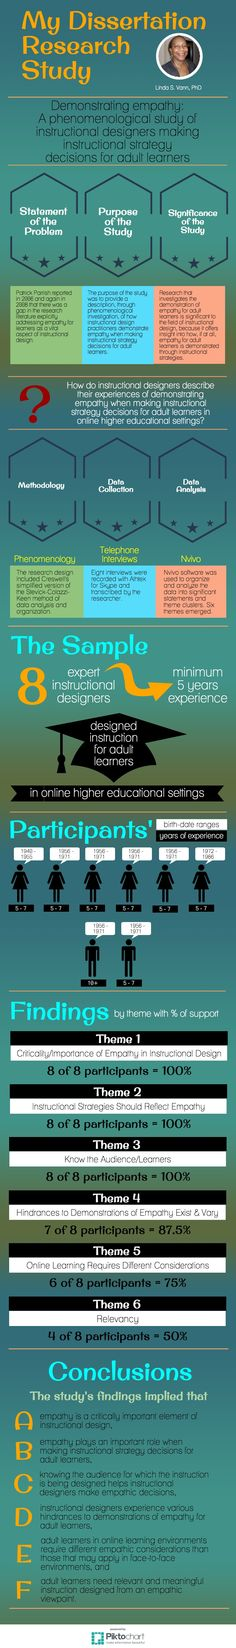 dissertation, research study, infographics  Research Study Findings and Conclusions | @Piktochart Infographic